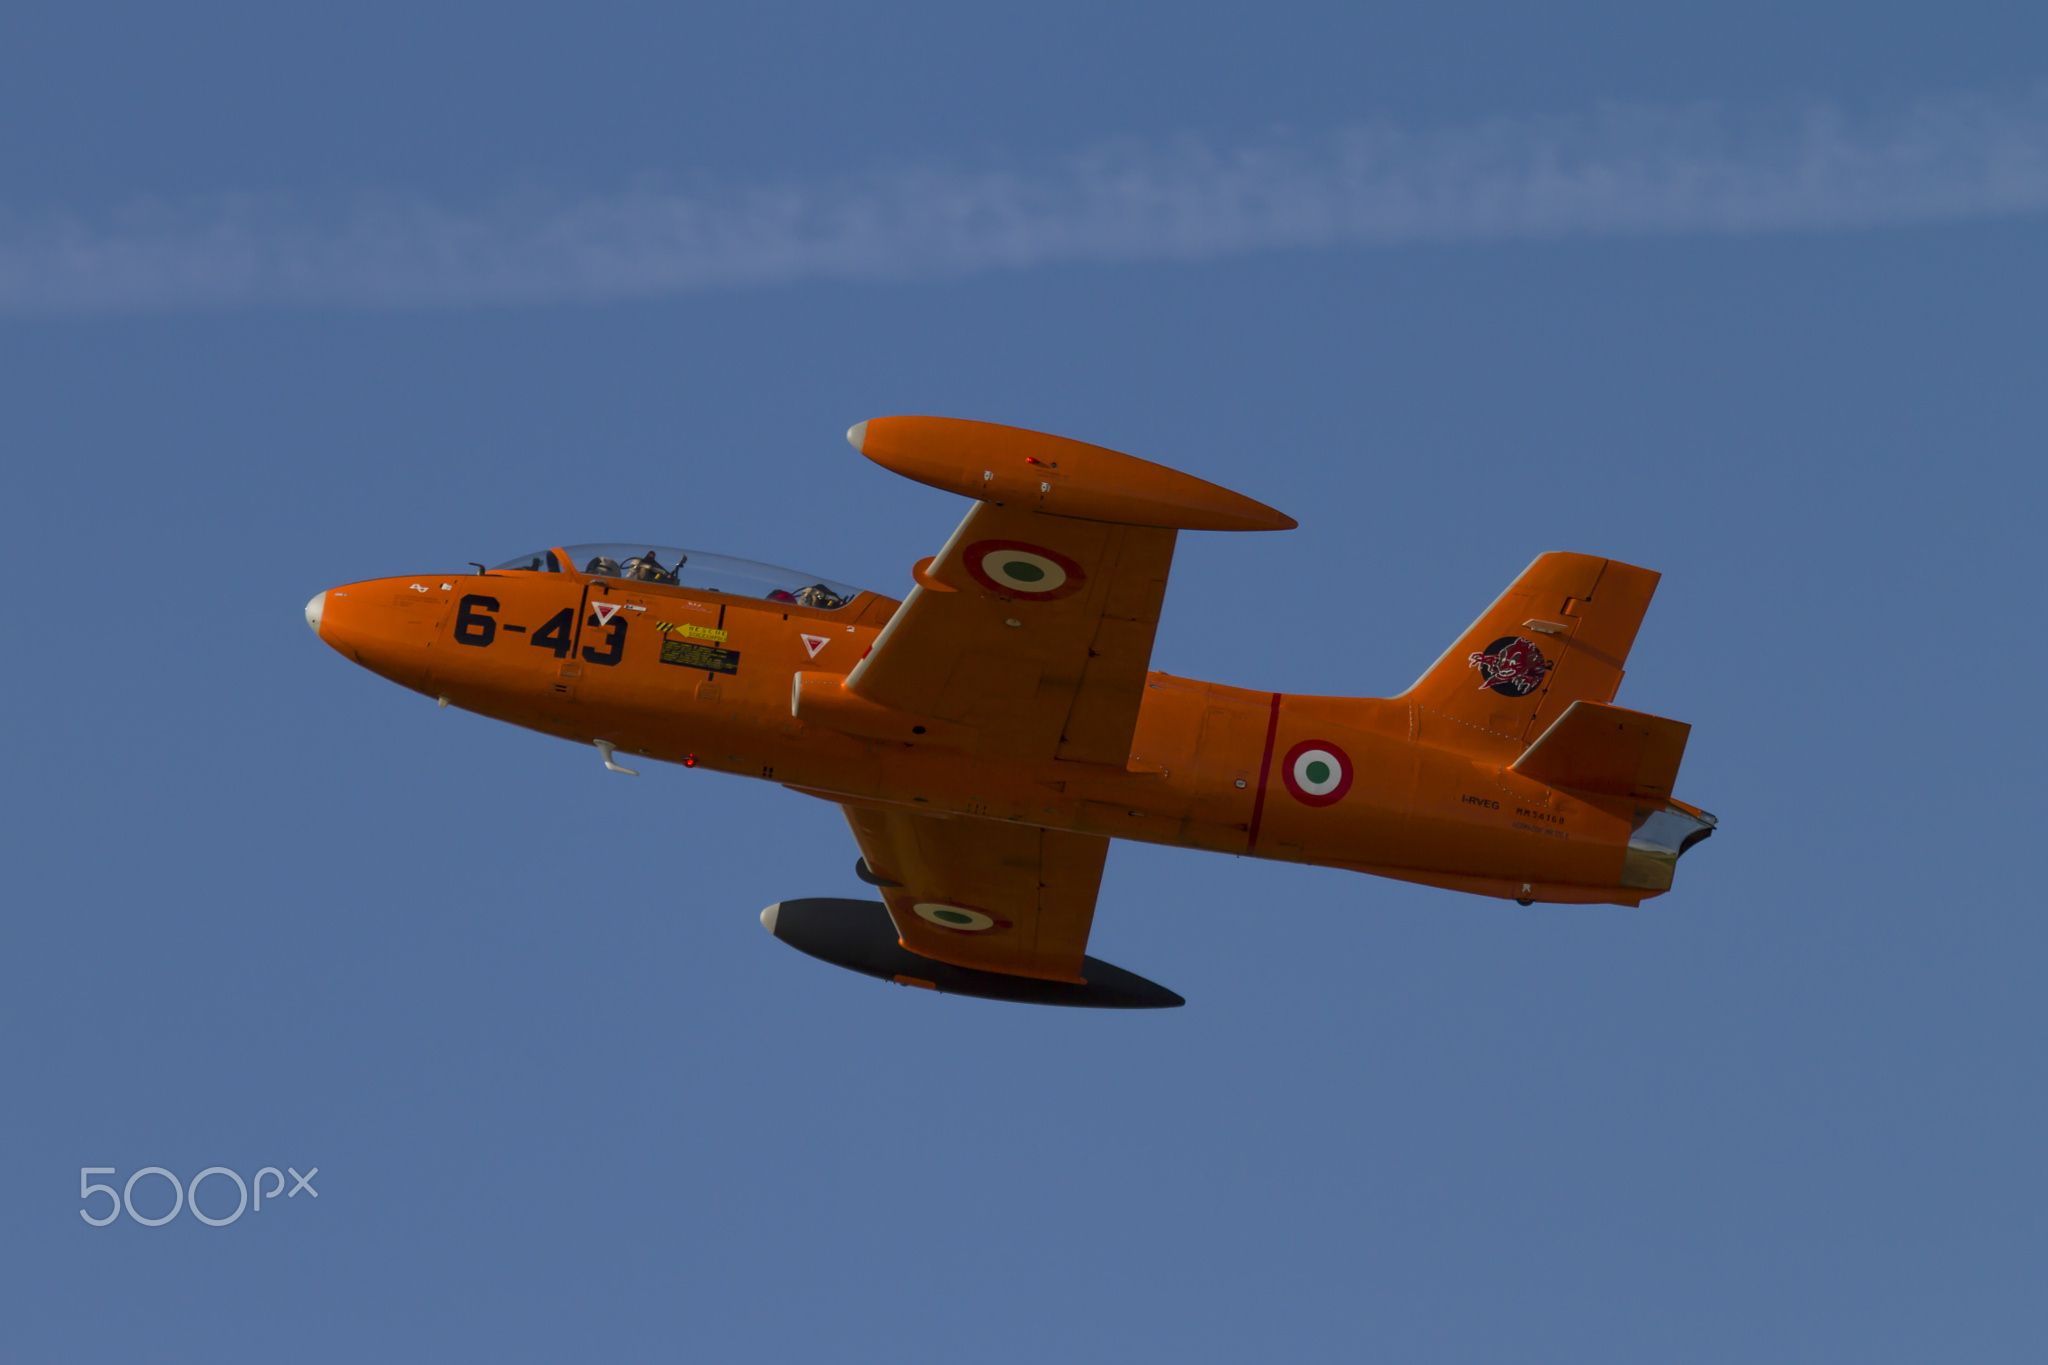 Historical Aircraft Airplane - Historical Aircraft in flying conditions during an airshow.